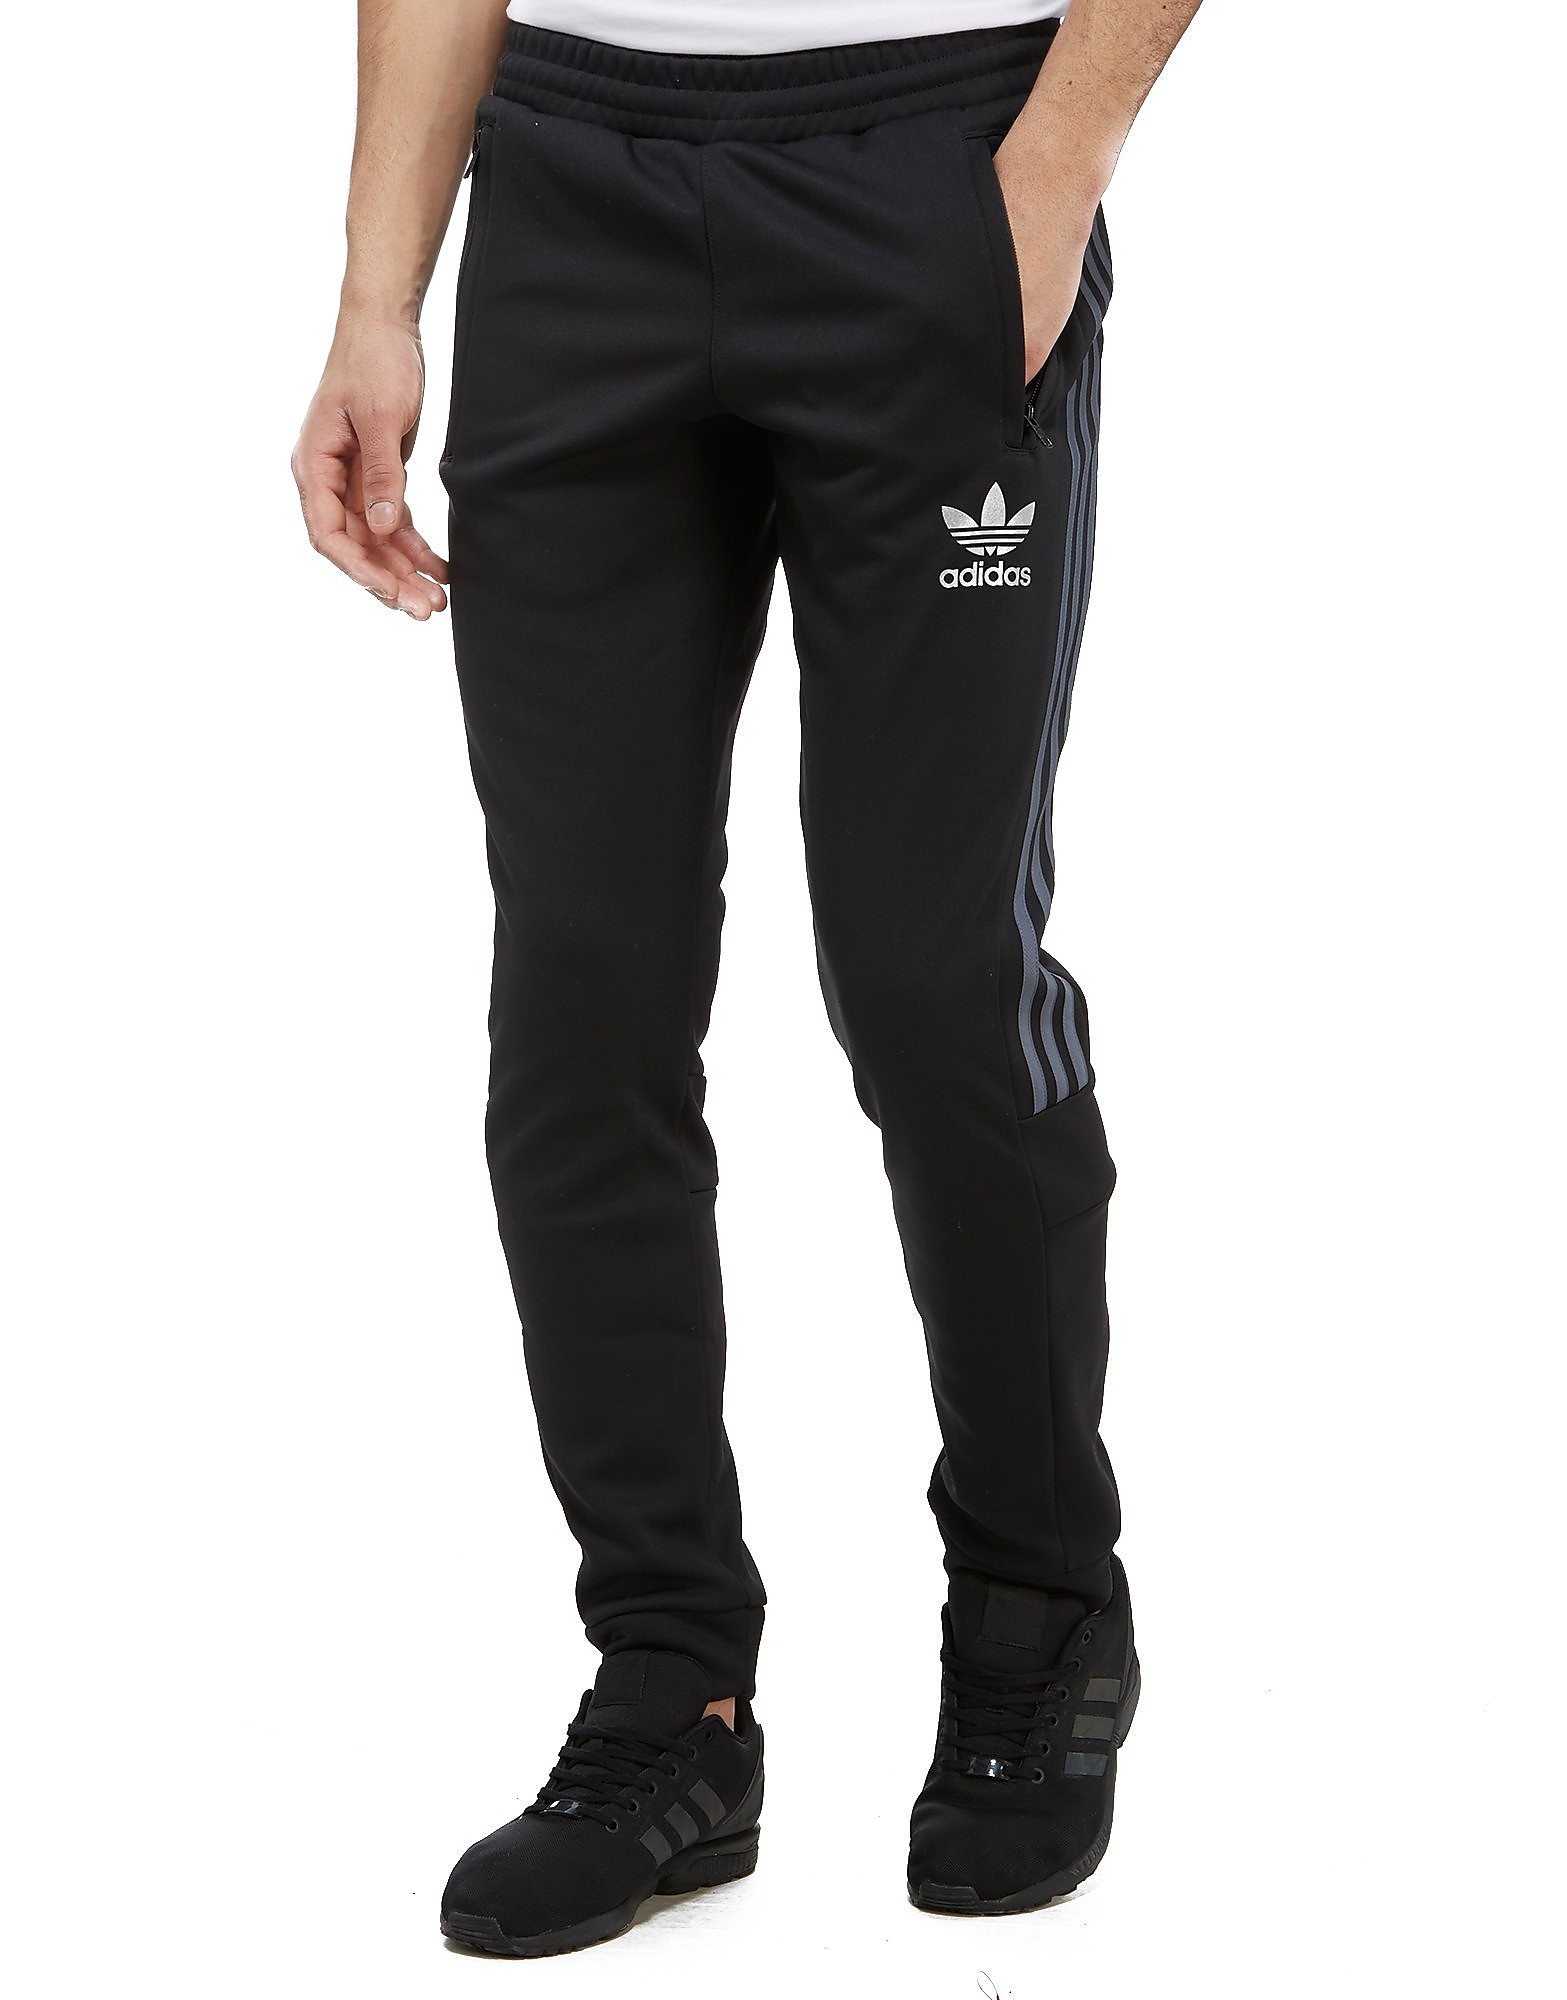 adidas Originals Street Run Bonded Pants